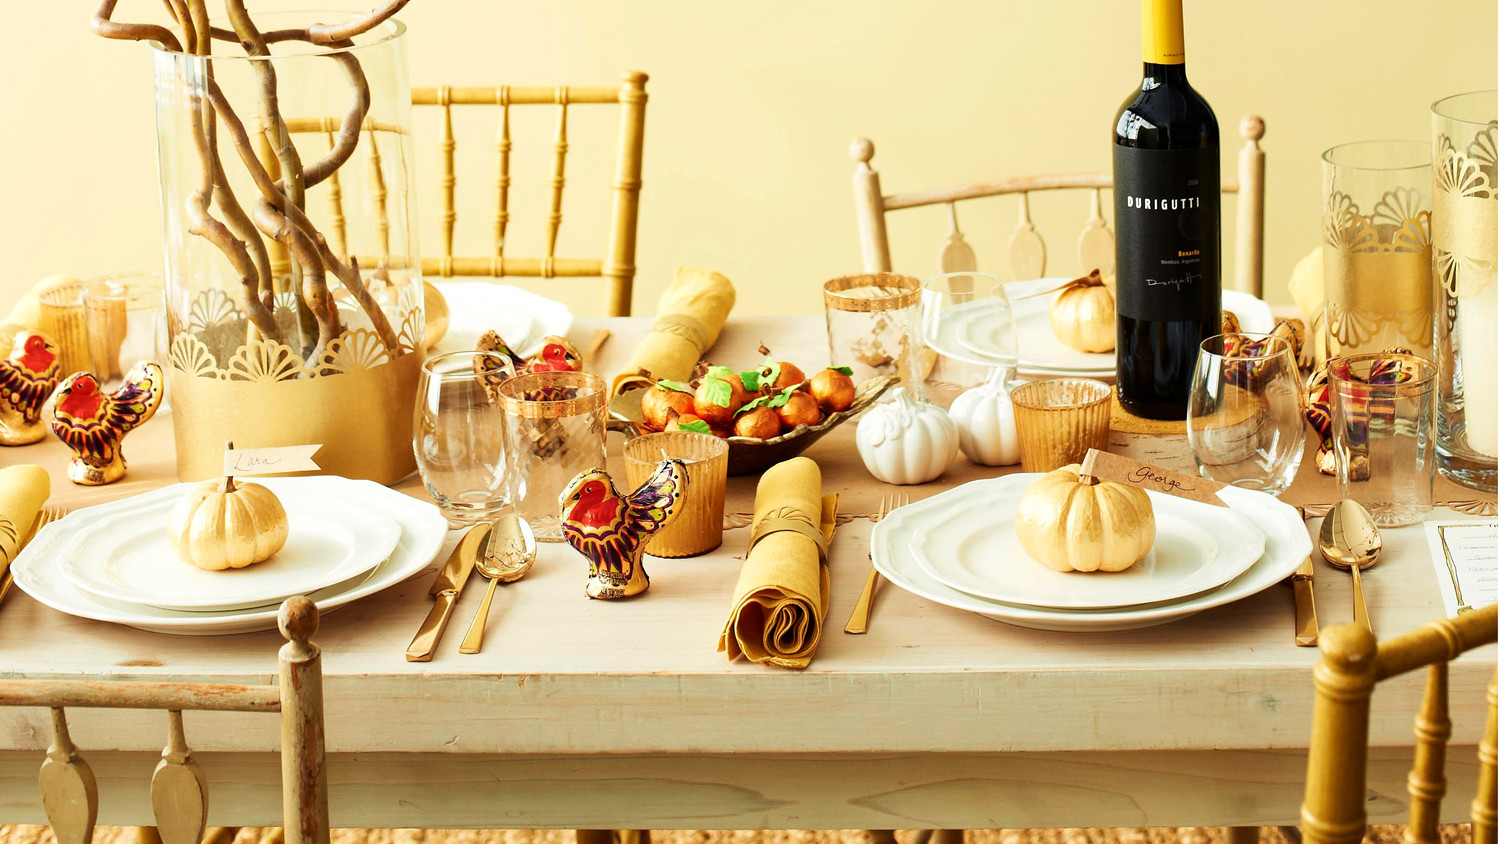 : thanksgiving table settings martha stewart - pezcame.com